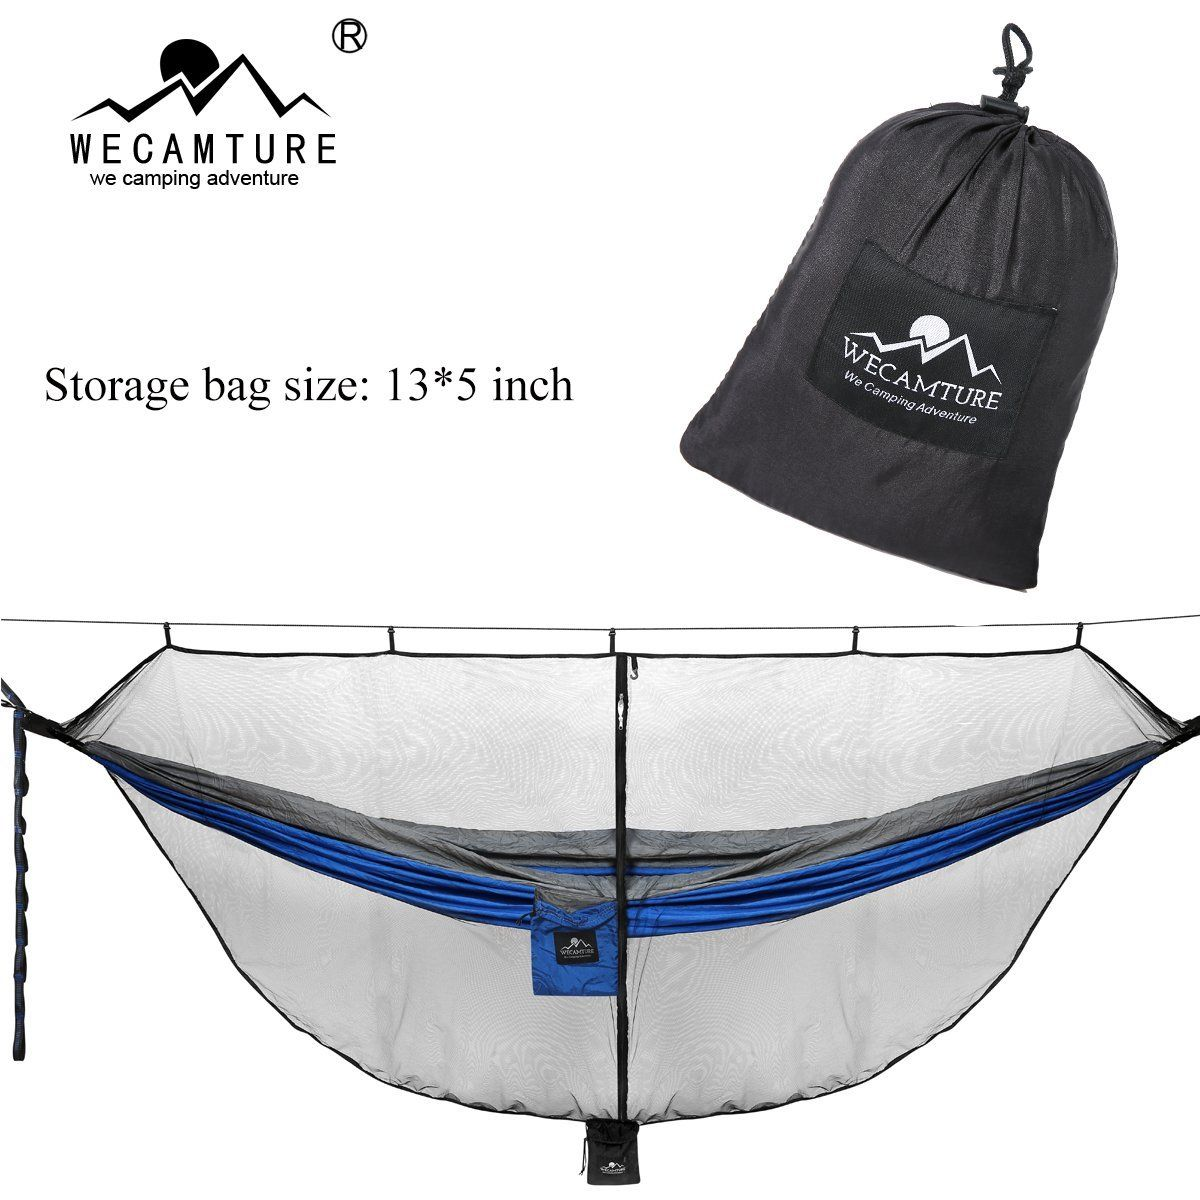 Wecamture Hammock Bug Mosquito Net XL 11x4.6FT No-See-Ums Polyester Fabric for Sporting Goods